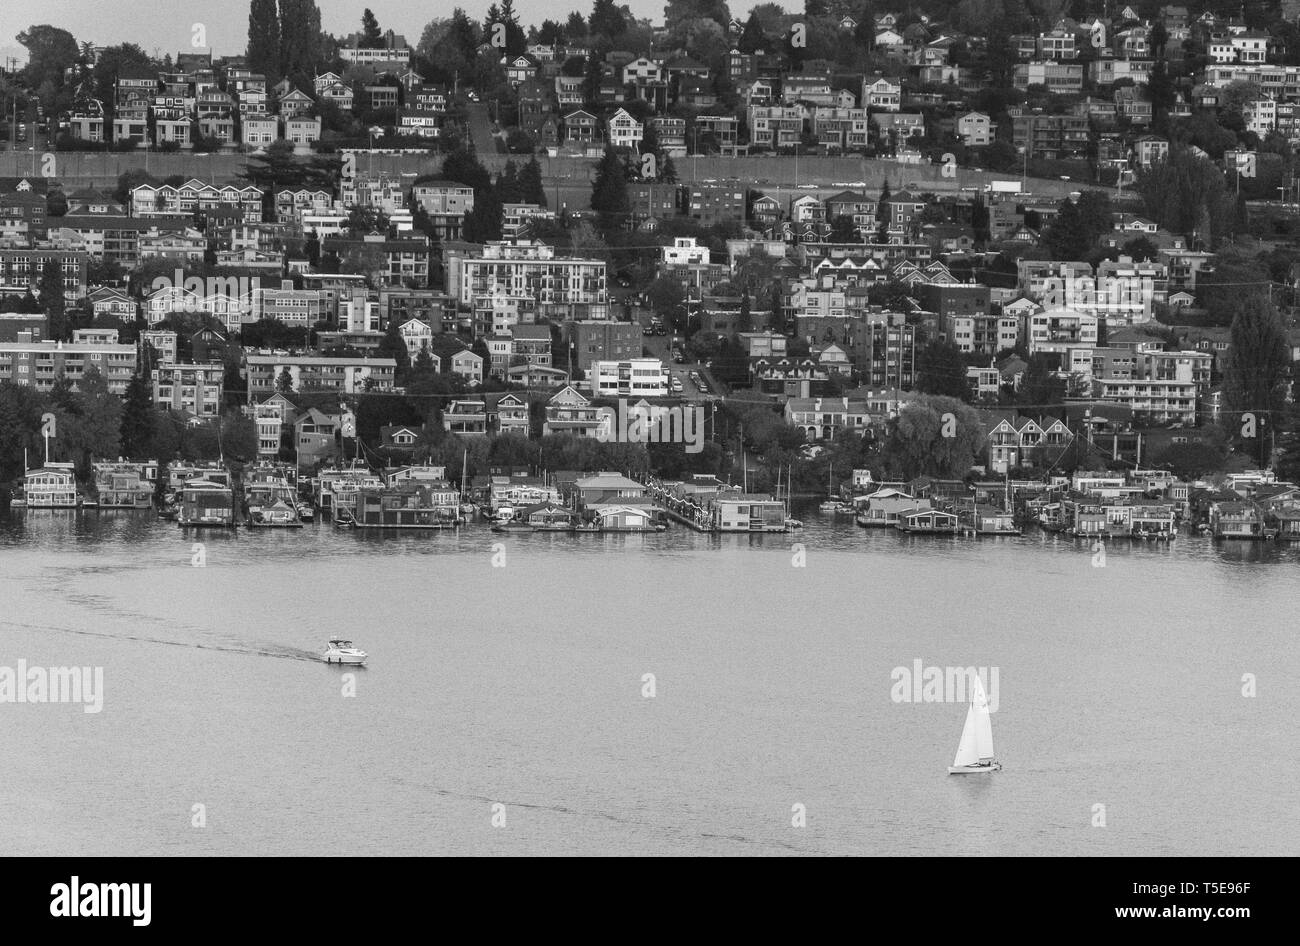 2018-10-20 - Seattle Lake Union photo taken from a rooftop in Westlake - Stock Image